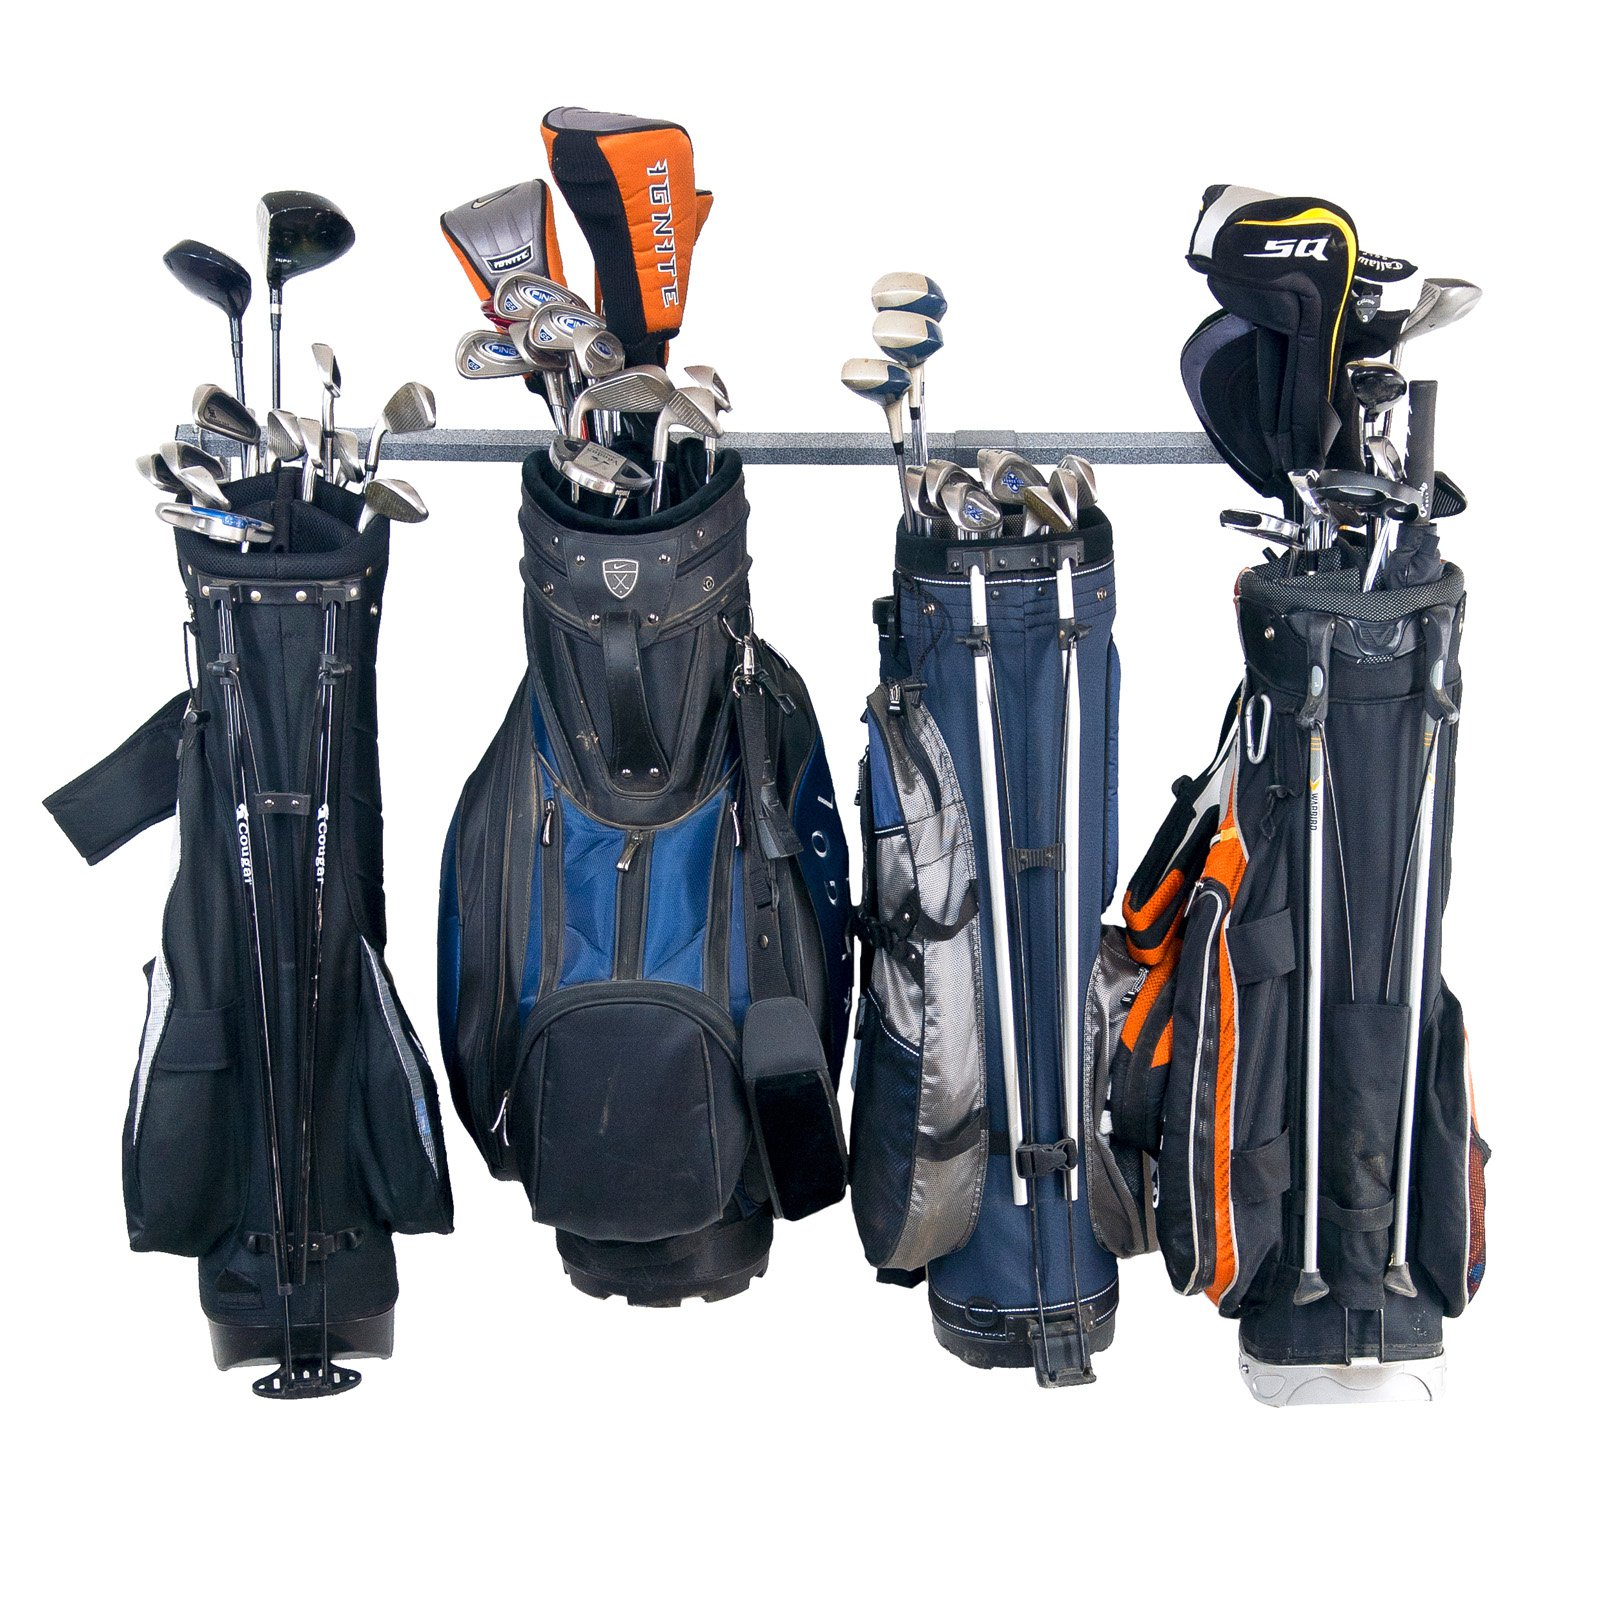 Monkey Bar Storage Large 6 Golf Bag Rack